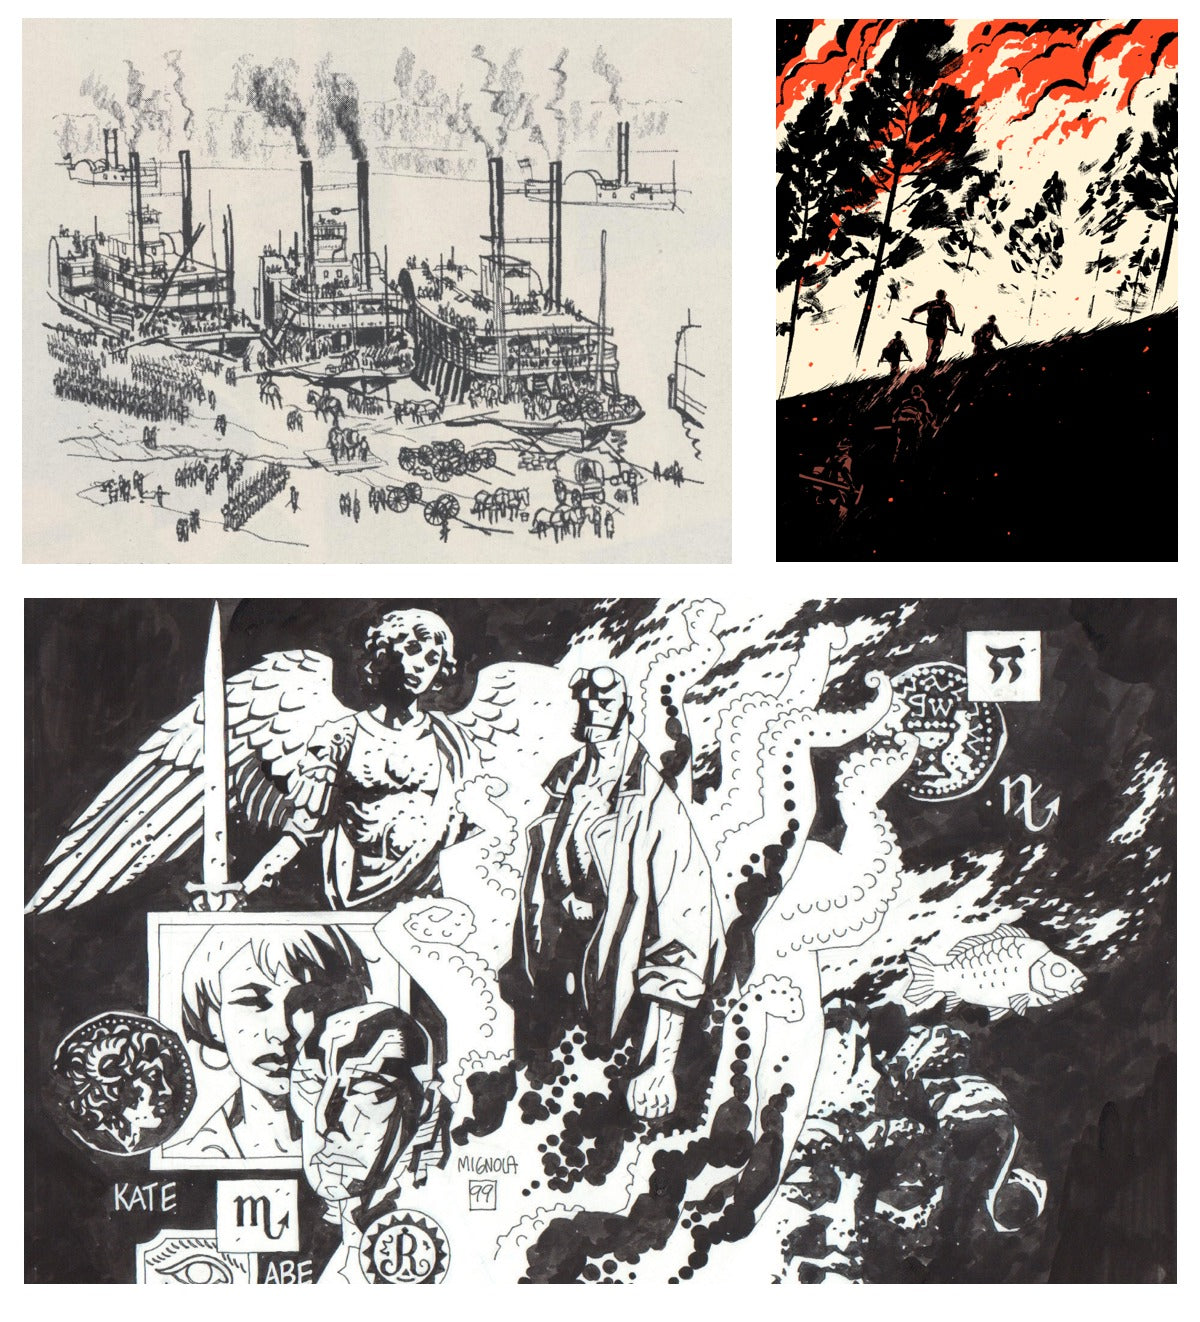 Illustrations by (top left) Noel Sickles; (top right) Patrick Leger; (bottom) Mike Mignola.